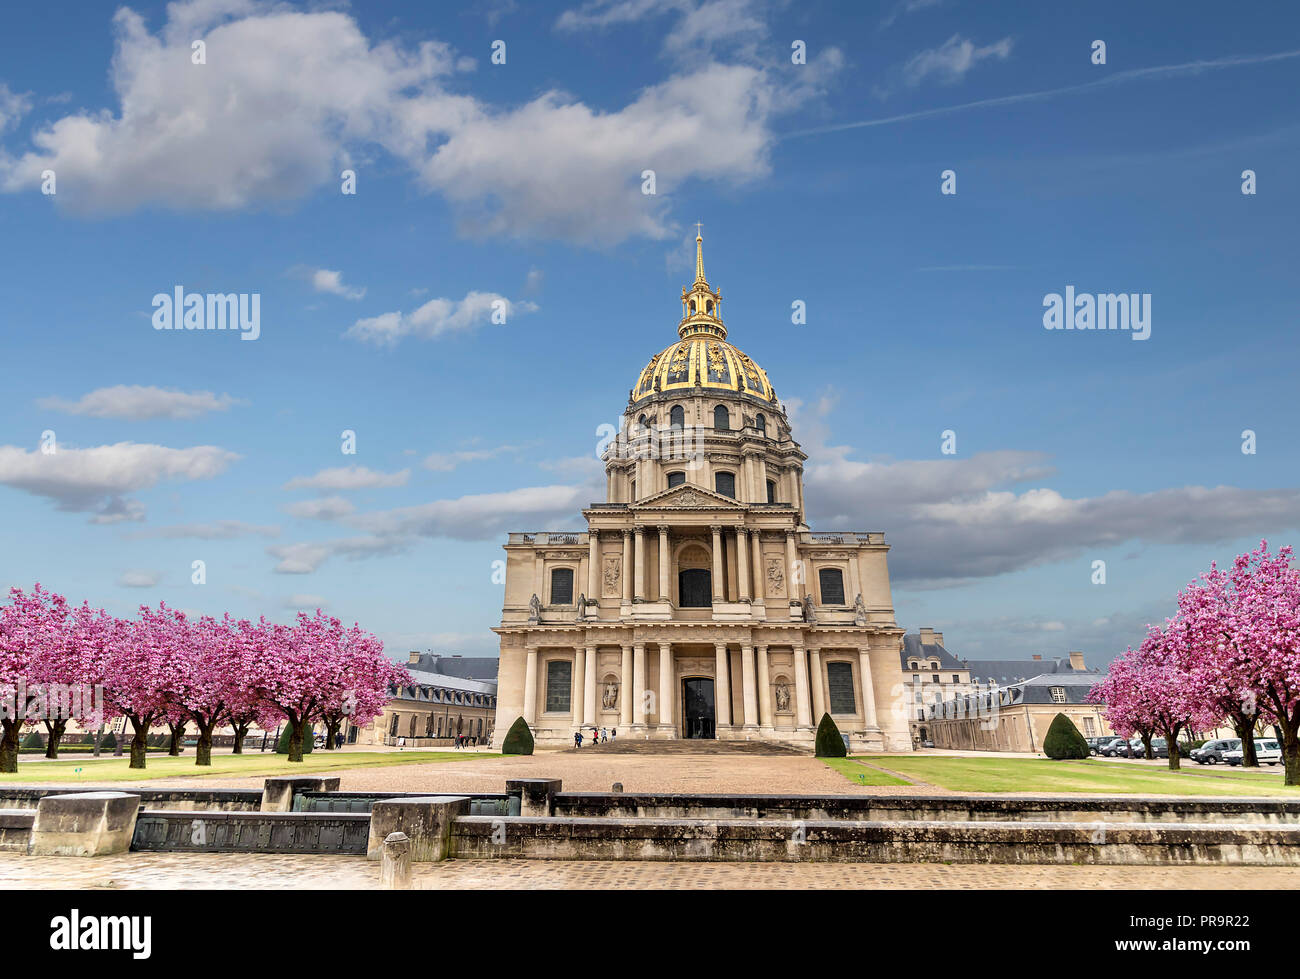 Les Invalides (National Residence of the Invalids) - complex of museums and monuments in Paris, France. Les Invalides is the burial site for some of F - Stock Image